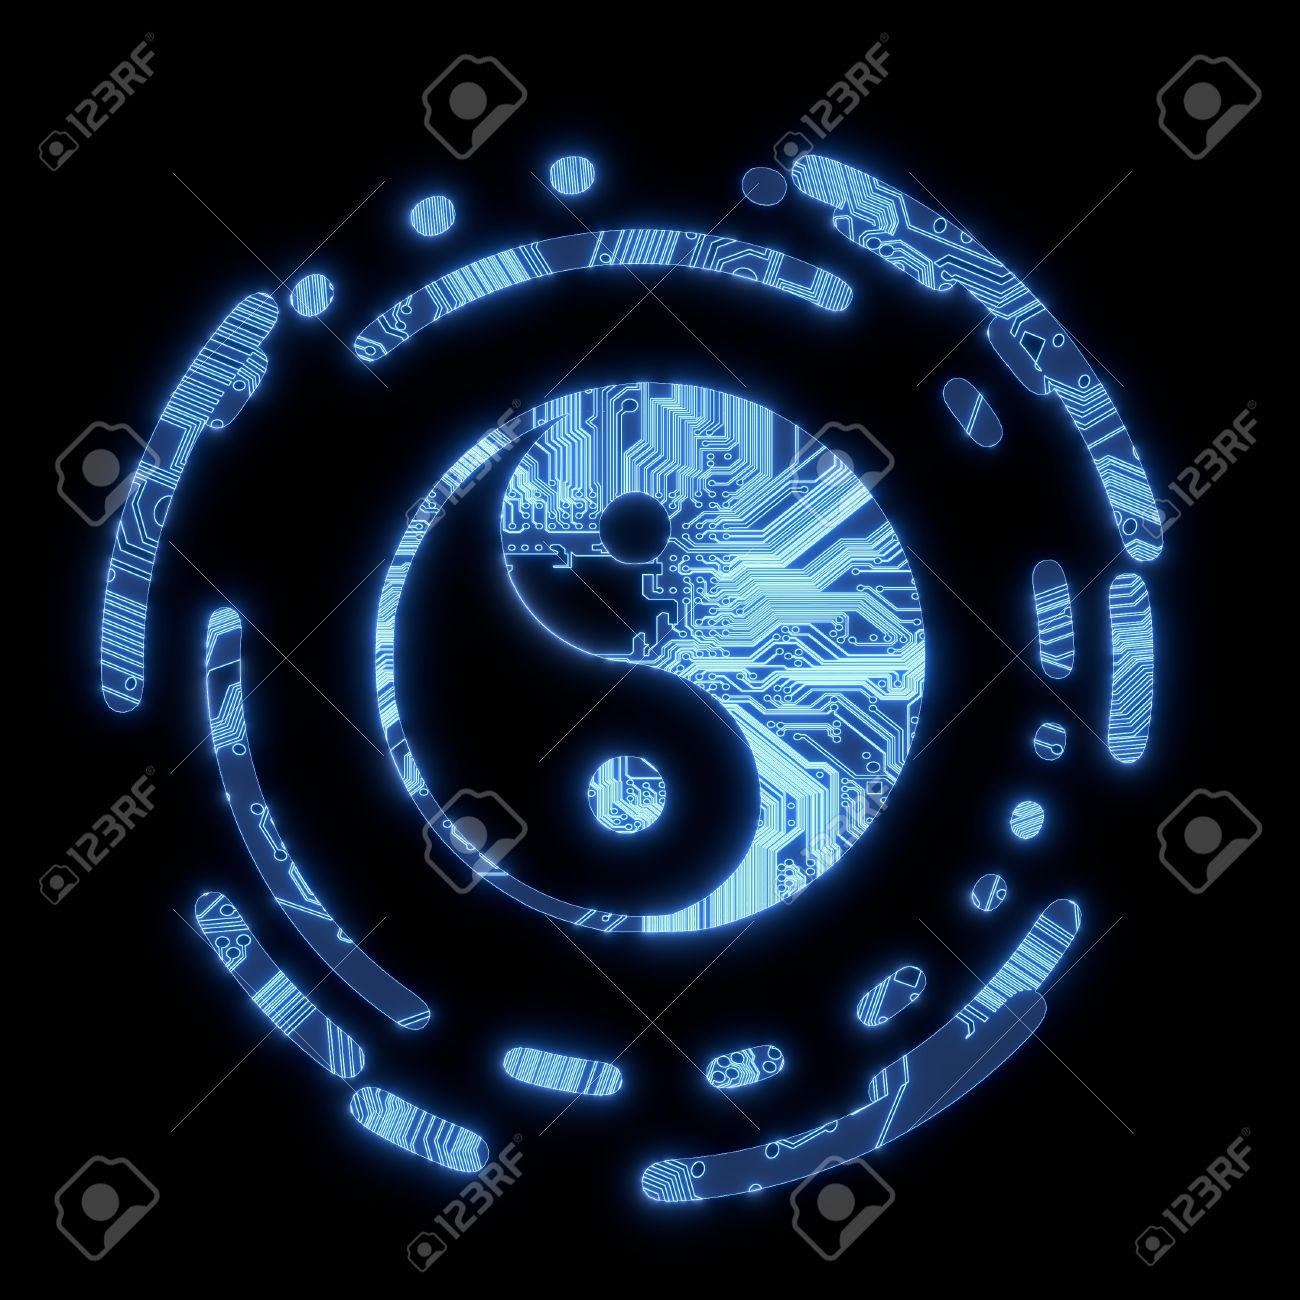 Electric Ying Yang Computer Symbol Stock Photo Picture And Royalty